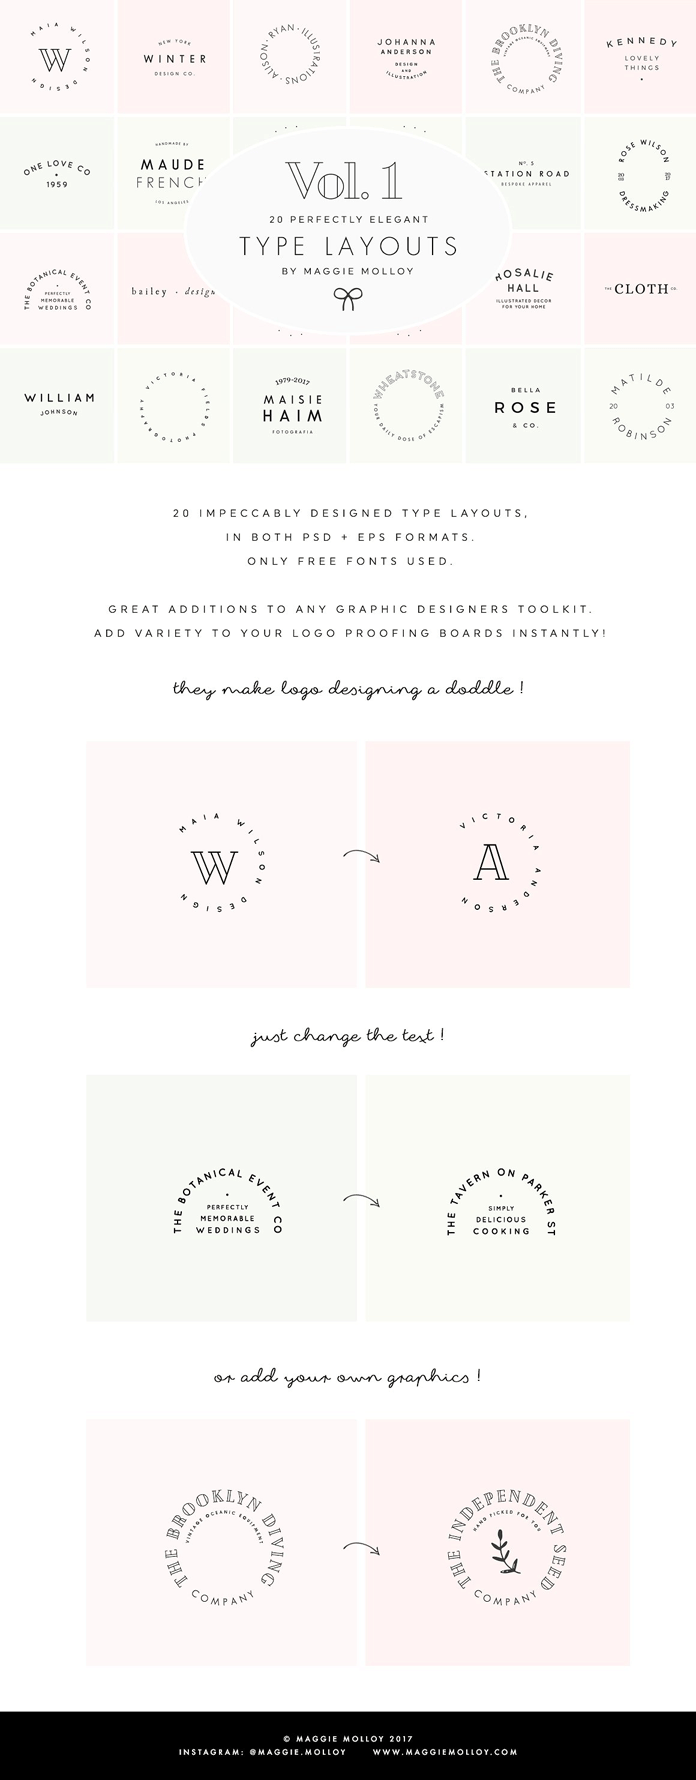 Logotype templates: text-based logos by Maggie Molloy.